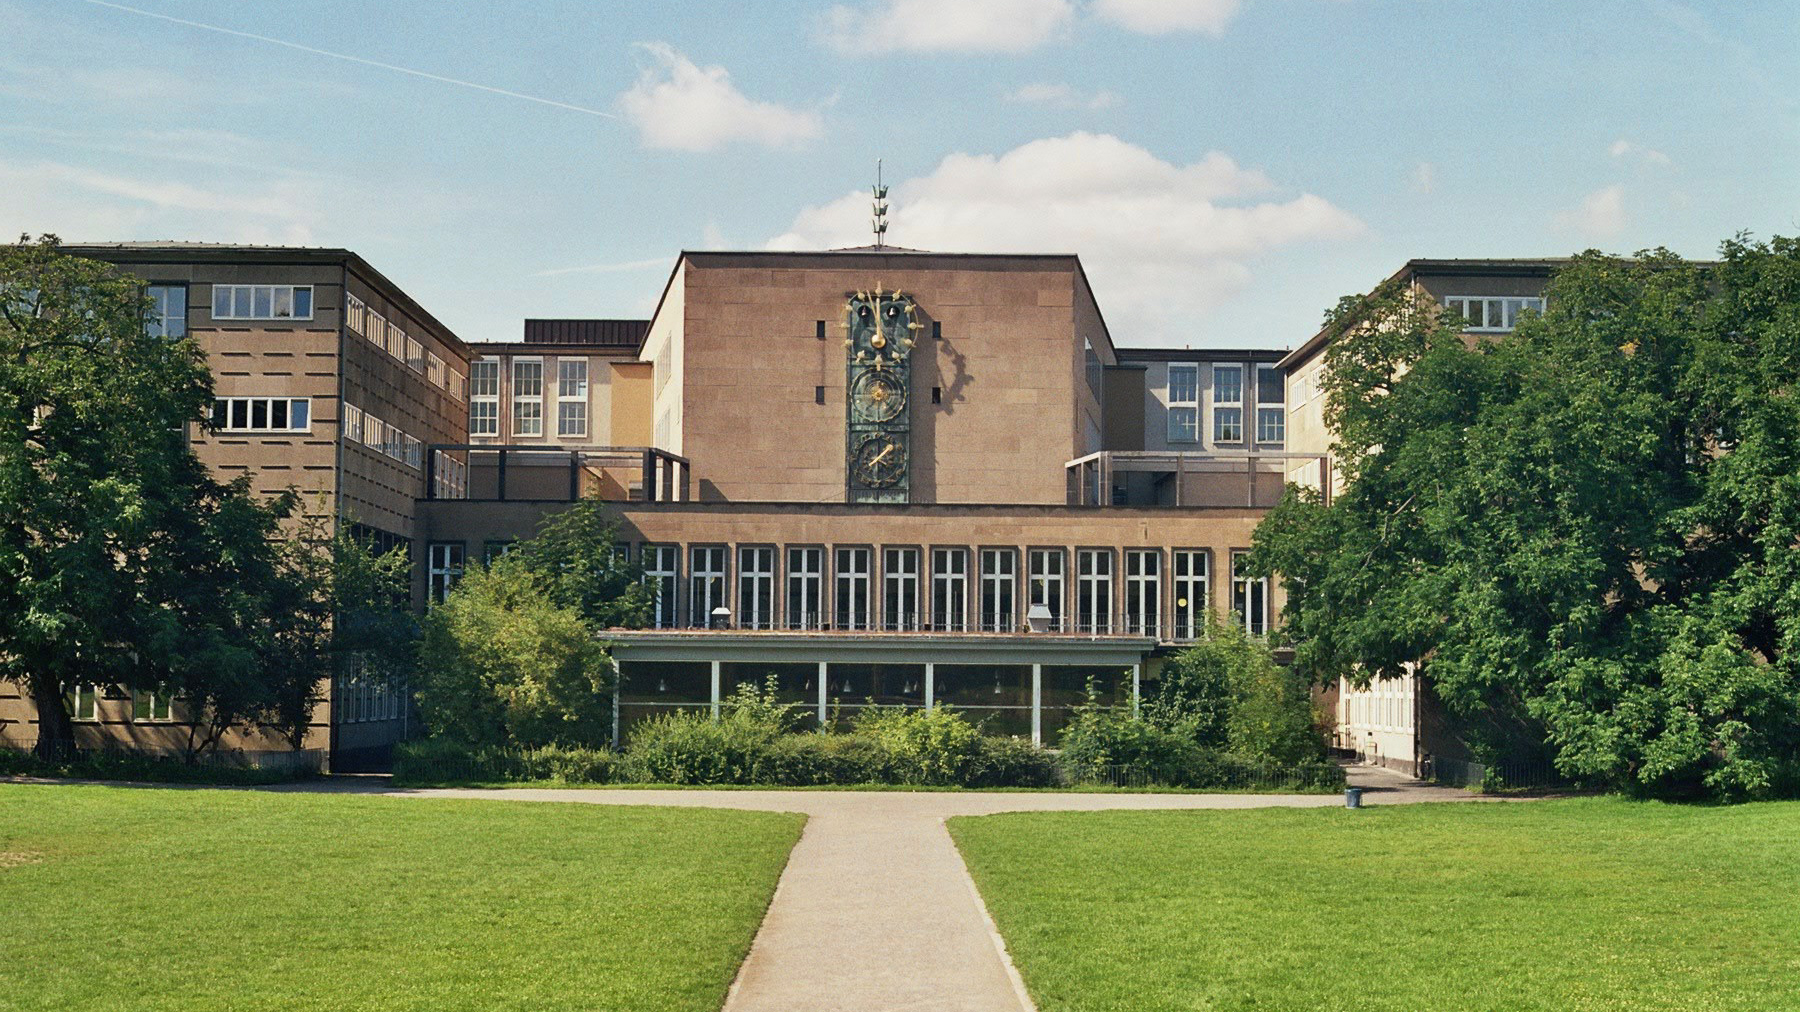 photo of a building from the University of Cologne